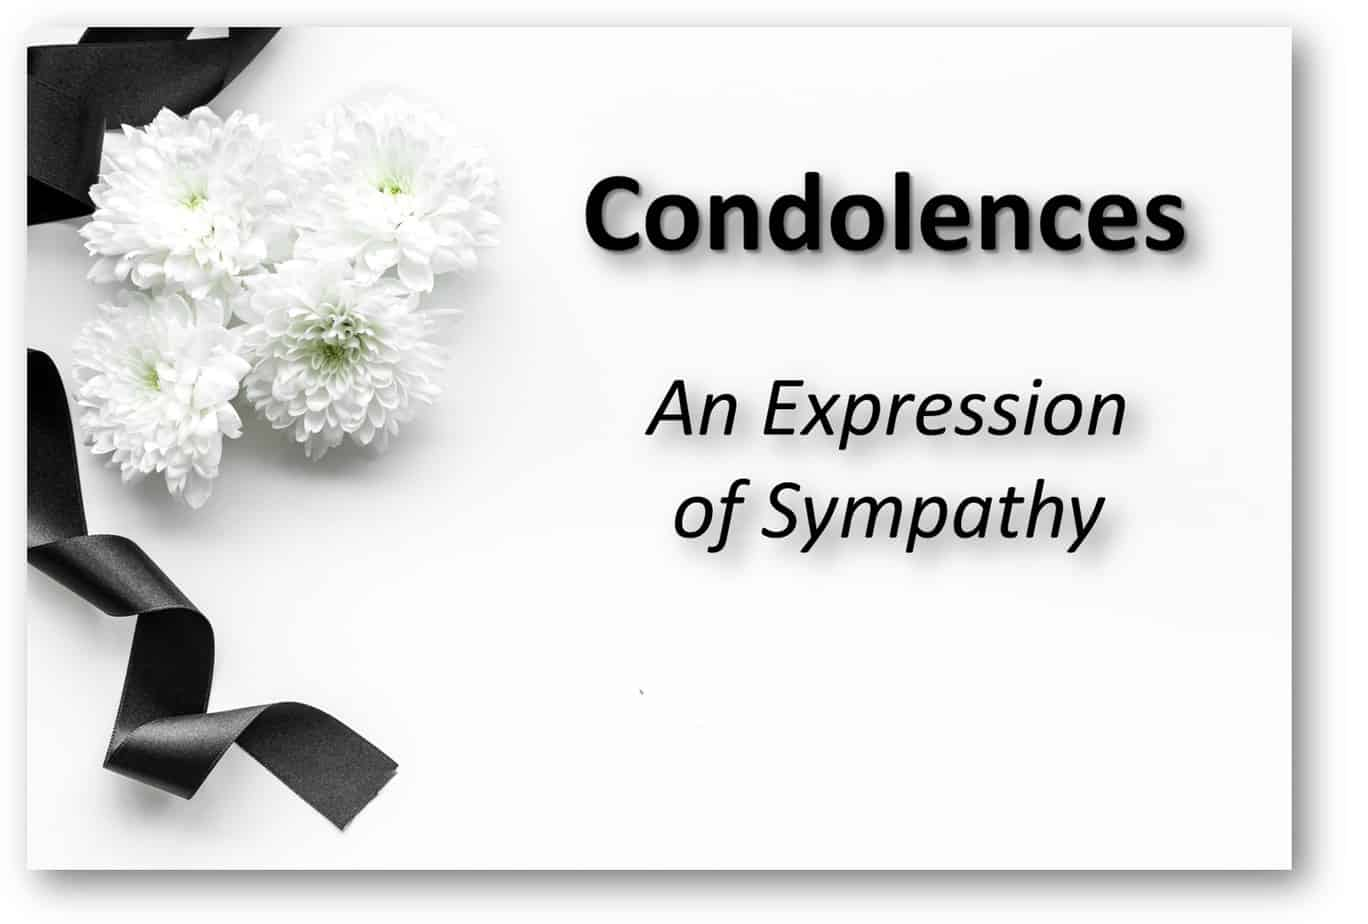 Letter Of Condolence For Loss Of Father from condolencemessages.com